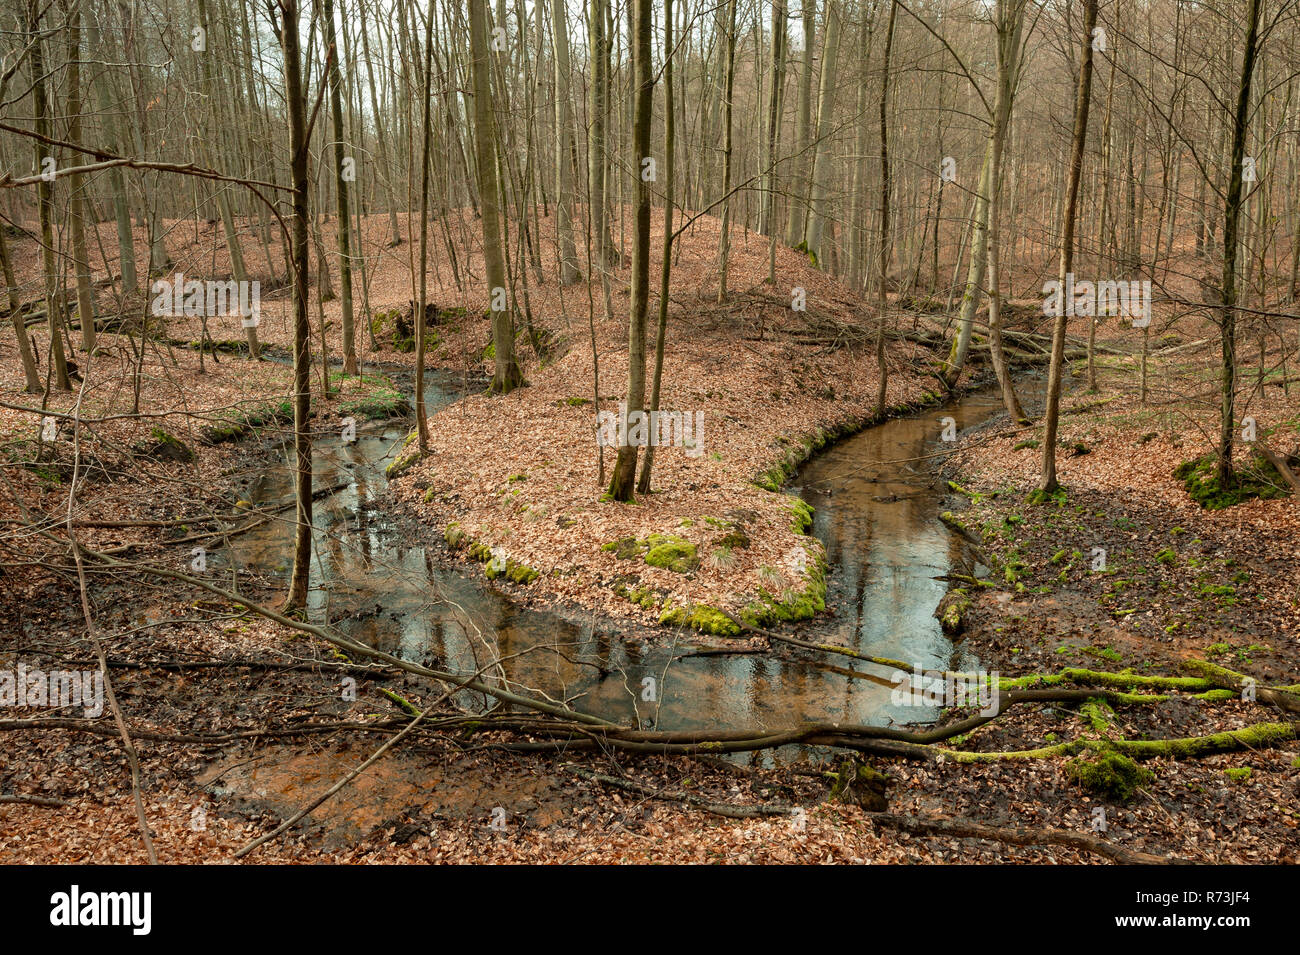 Nonnenfliess, creek, beech forest, (Fagus sylvatica), nature reserve Nonnenfliess, Spechthausen, Brandenburg, Germany - Stock Image